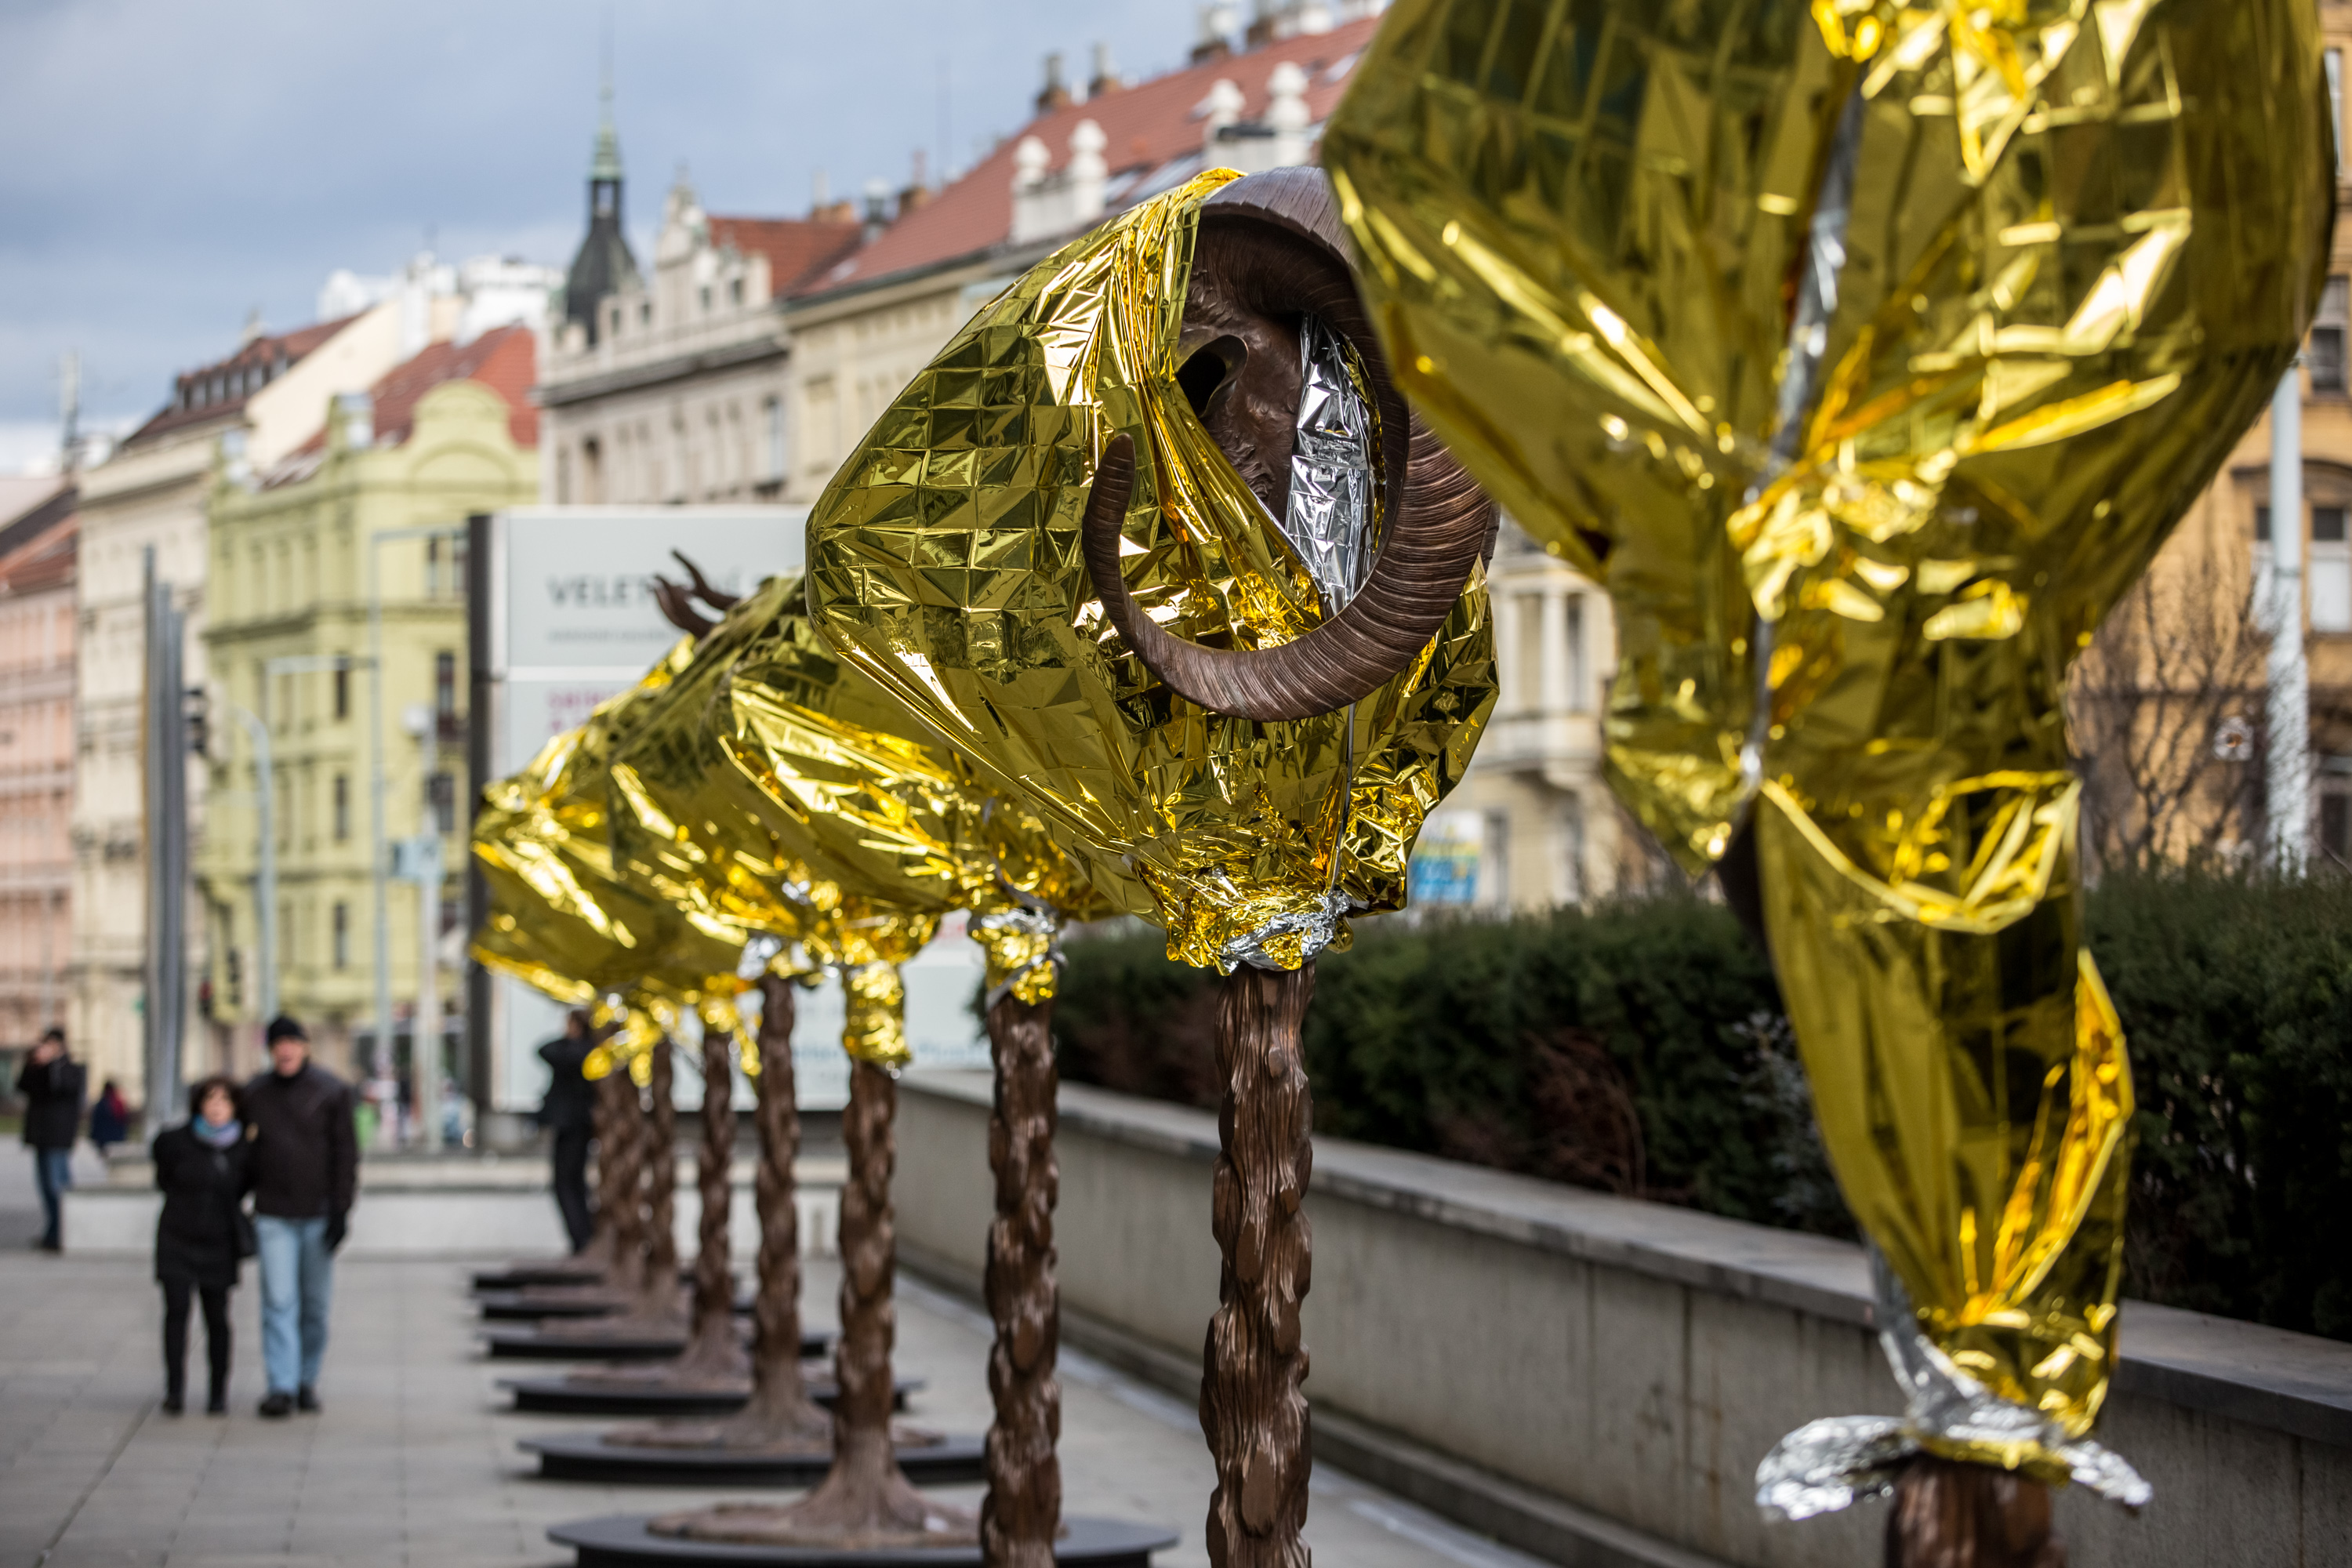 PRAGUE, CZECH REPUBLIC - FEBRUARY 05:  People walk past the 'Circle of Animals / Zodiac Heads' sculptures by Chinese artist Ai Weiwei in front of the Trade Fair Palace run by the National Gallery on February 5, 2016 in Prague, Czech Republic. An exhibition in front of the palace runs from February 6 to August 31, 2016. Ai Weiwei wrapped his bronze heads with thermal blankets to protest against migrants situation in Europe. It is the first time that the artist exhibits his work in the Czech Republic.  (Photo by Matej Divizna/Getty Images)